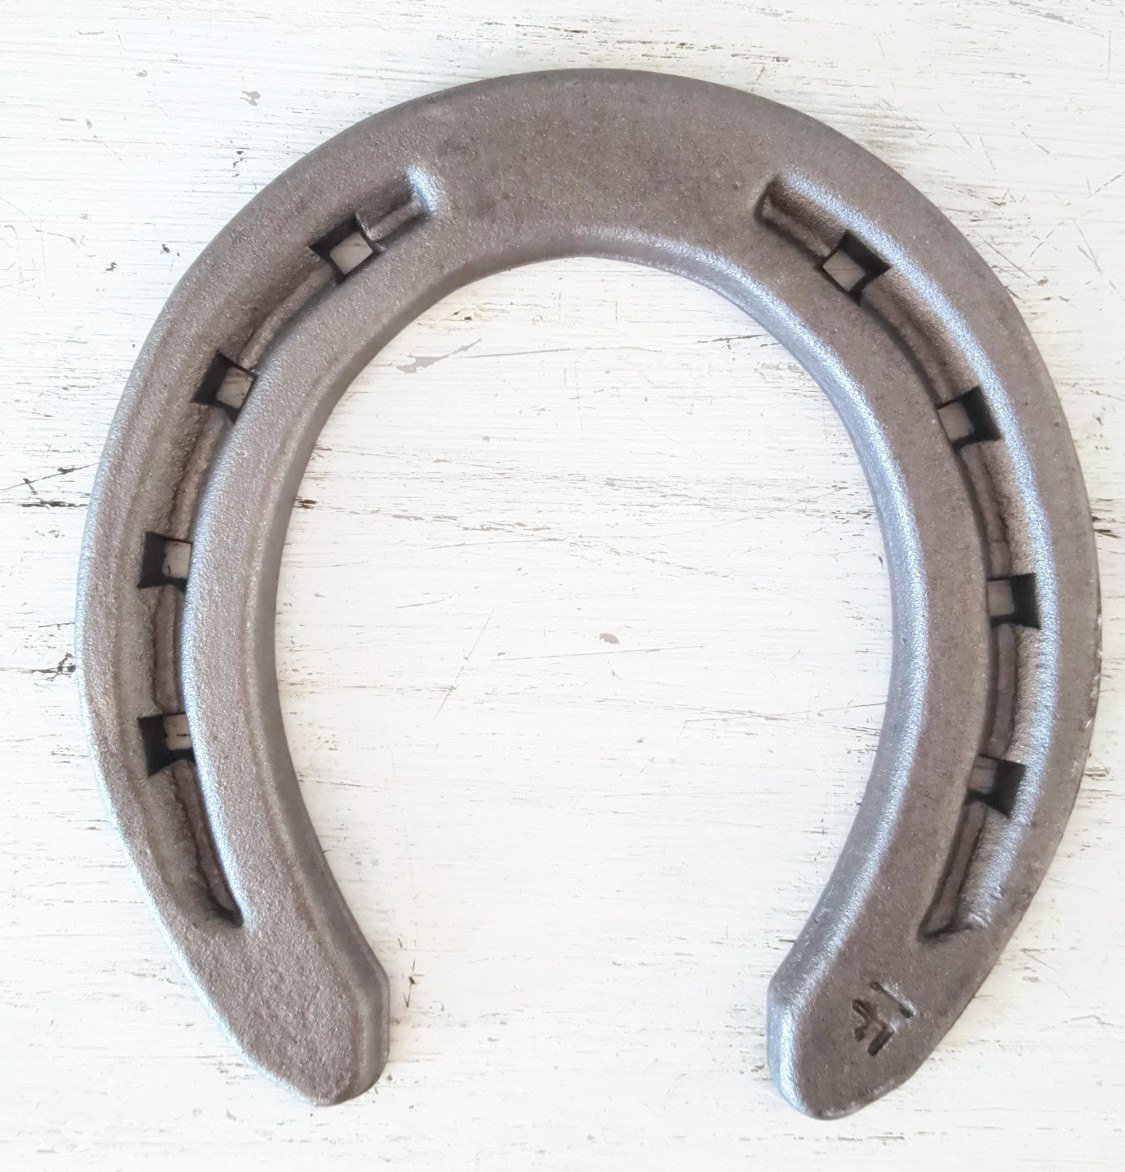 New Steel Horseshoes - Size 000- R1-F -Sand Blasted- Heritage Forge - 20 Shoes